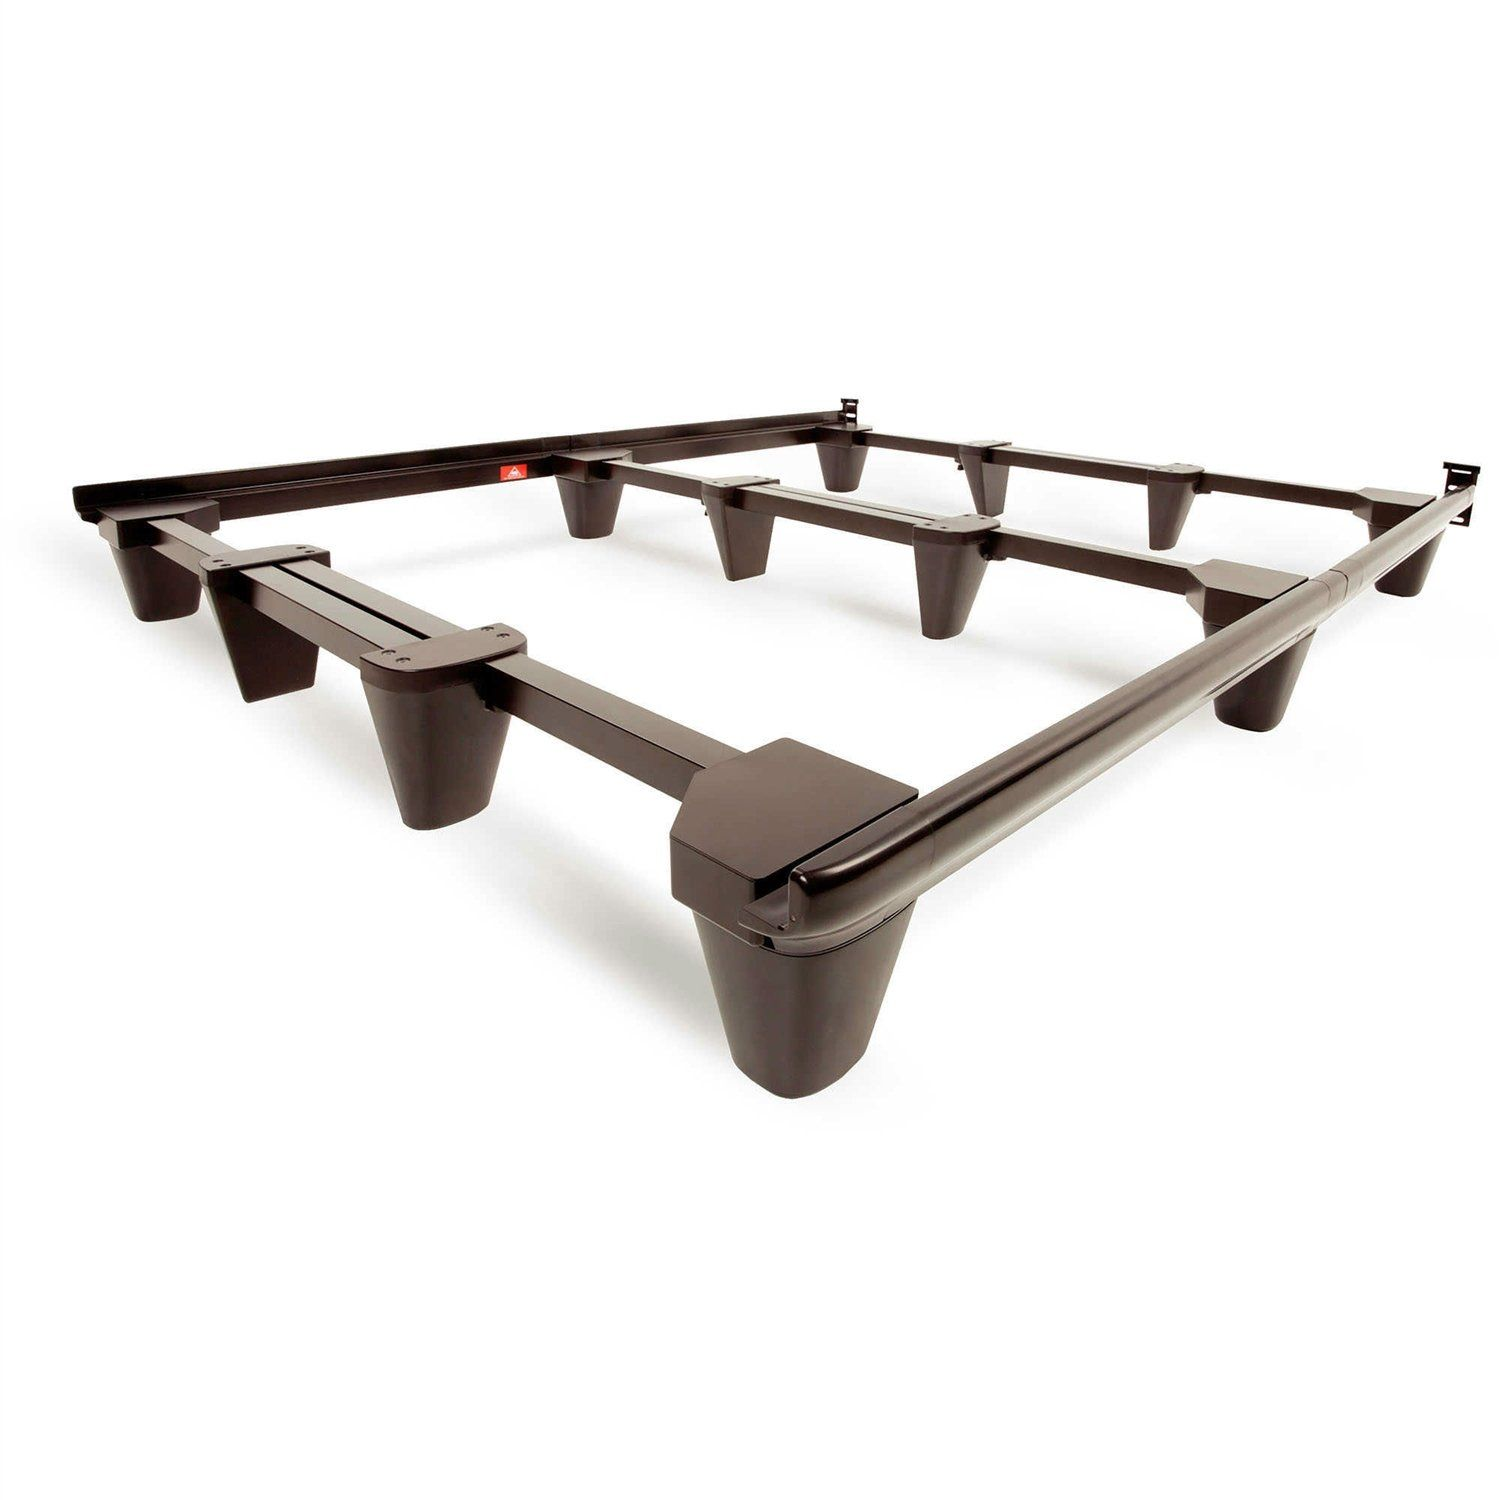 Heavy Duty Metal Bed Frame In Mahogany Finish Adjusts To Size Full